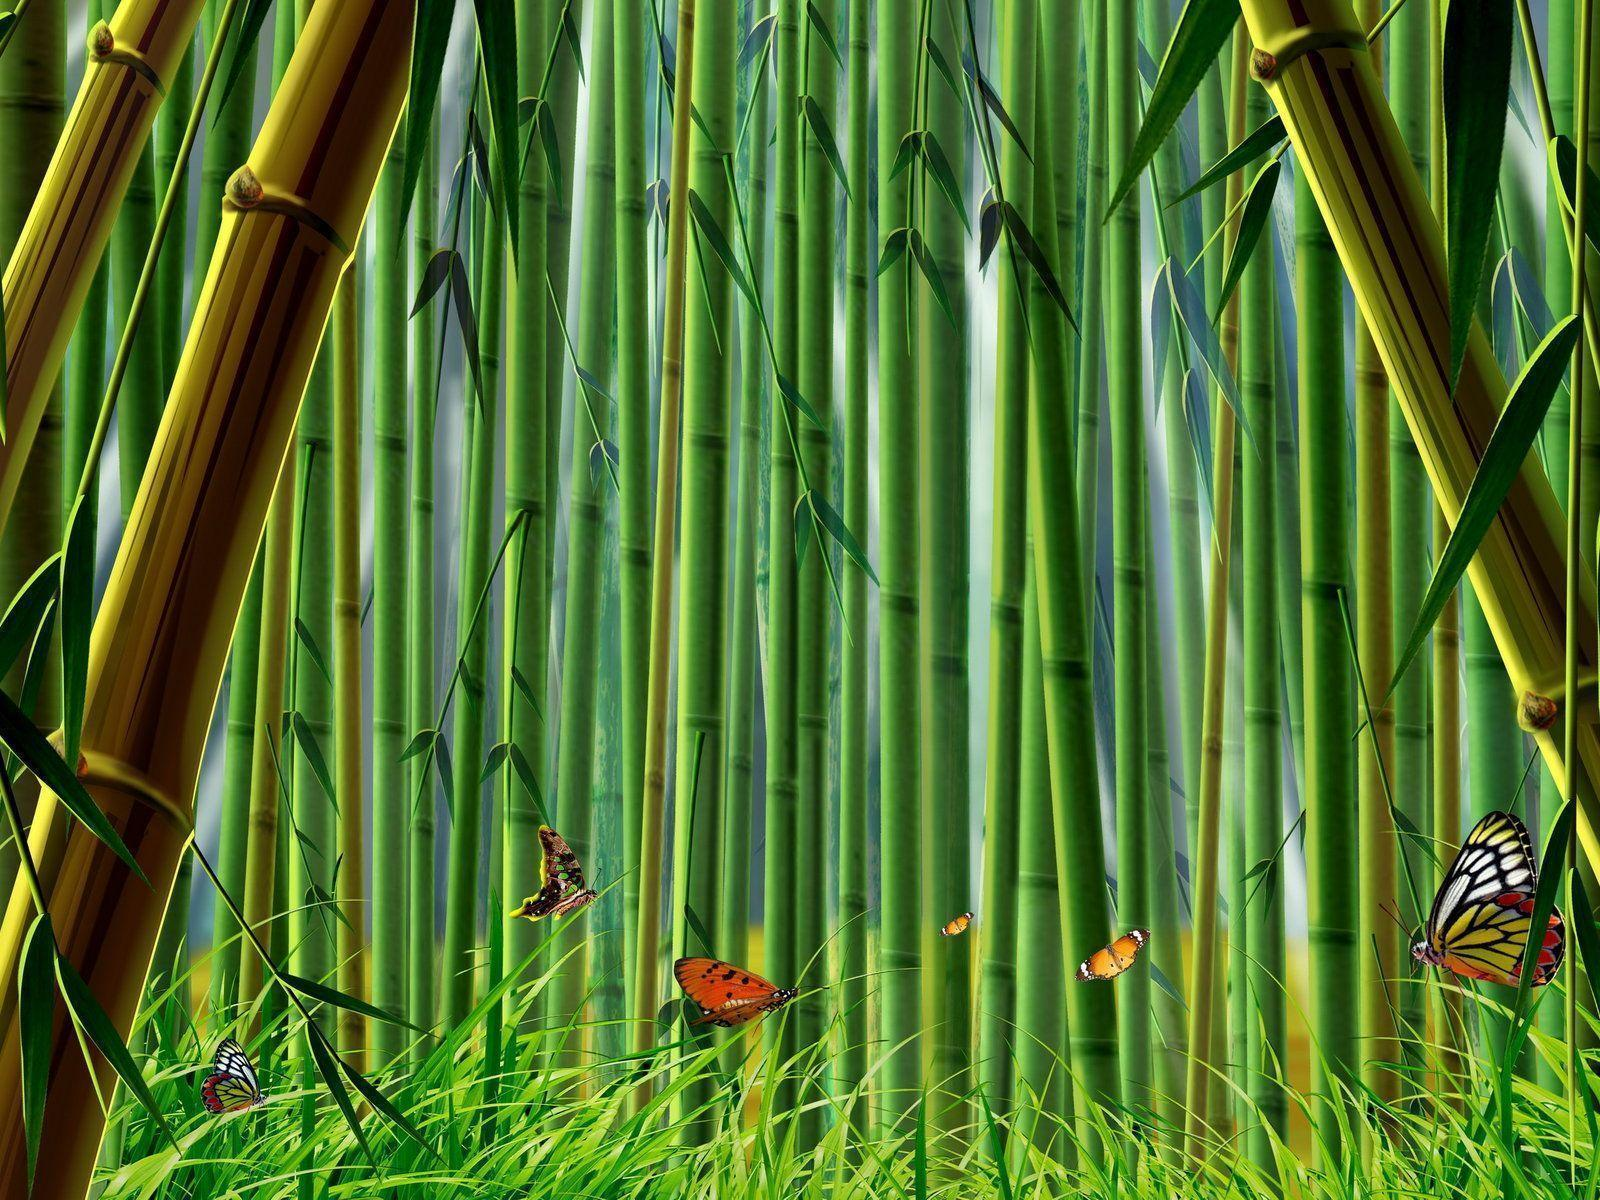 bamboo wallpaper by doantrangnguyen - photo #3